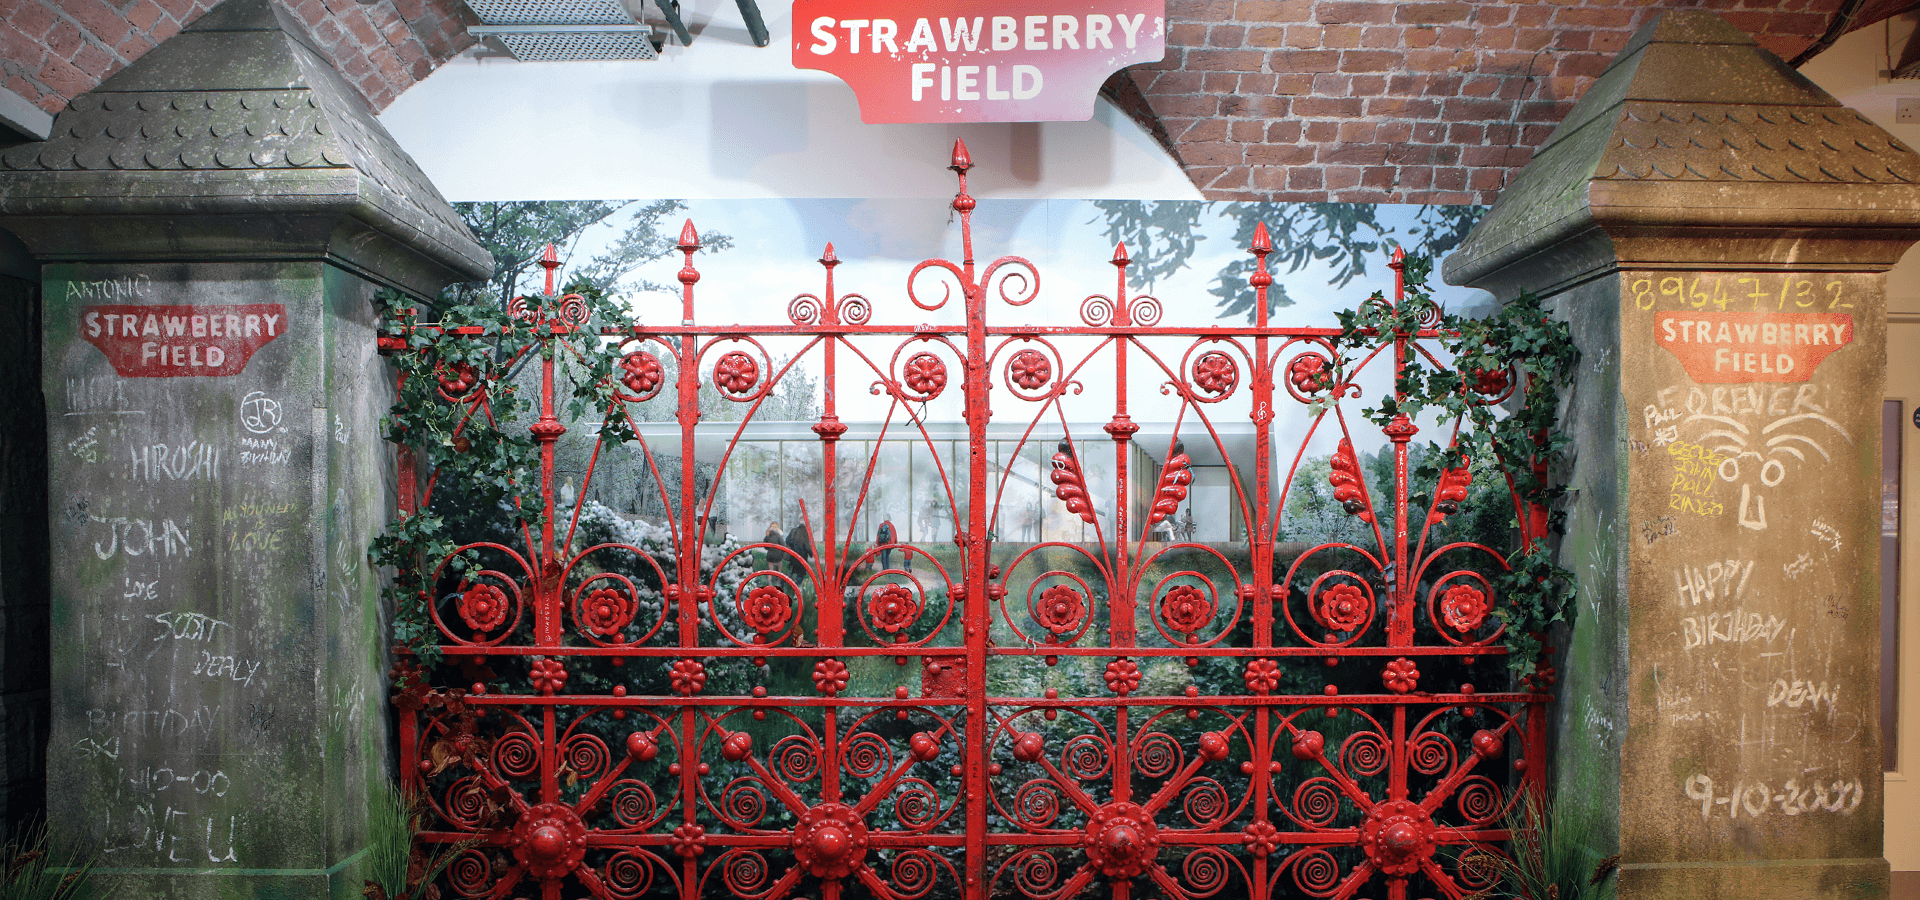 Strawberry Fields Forever: iconic gates on display